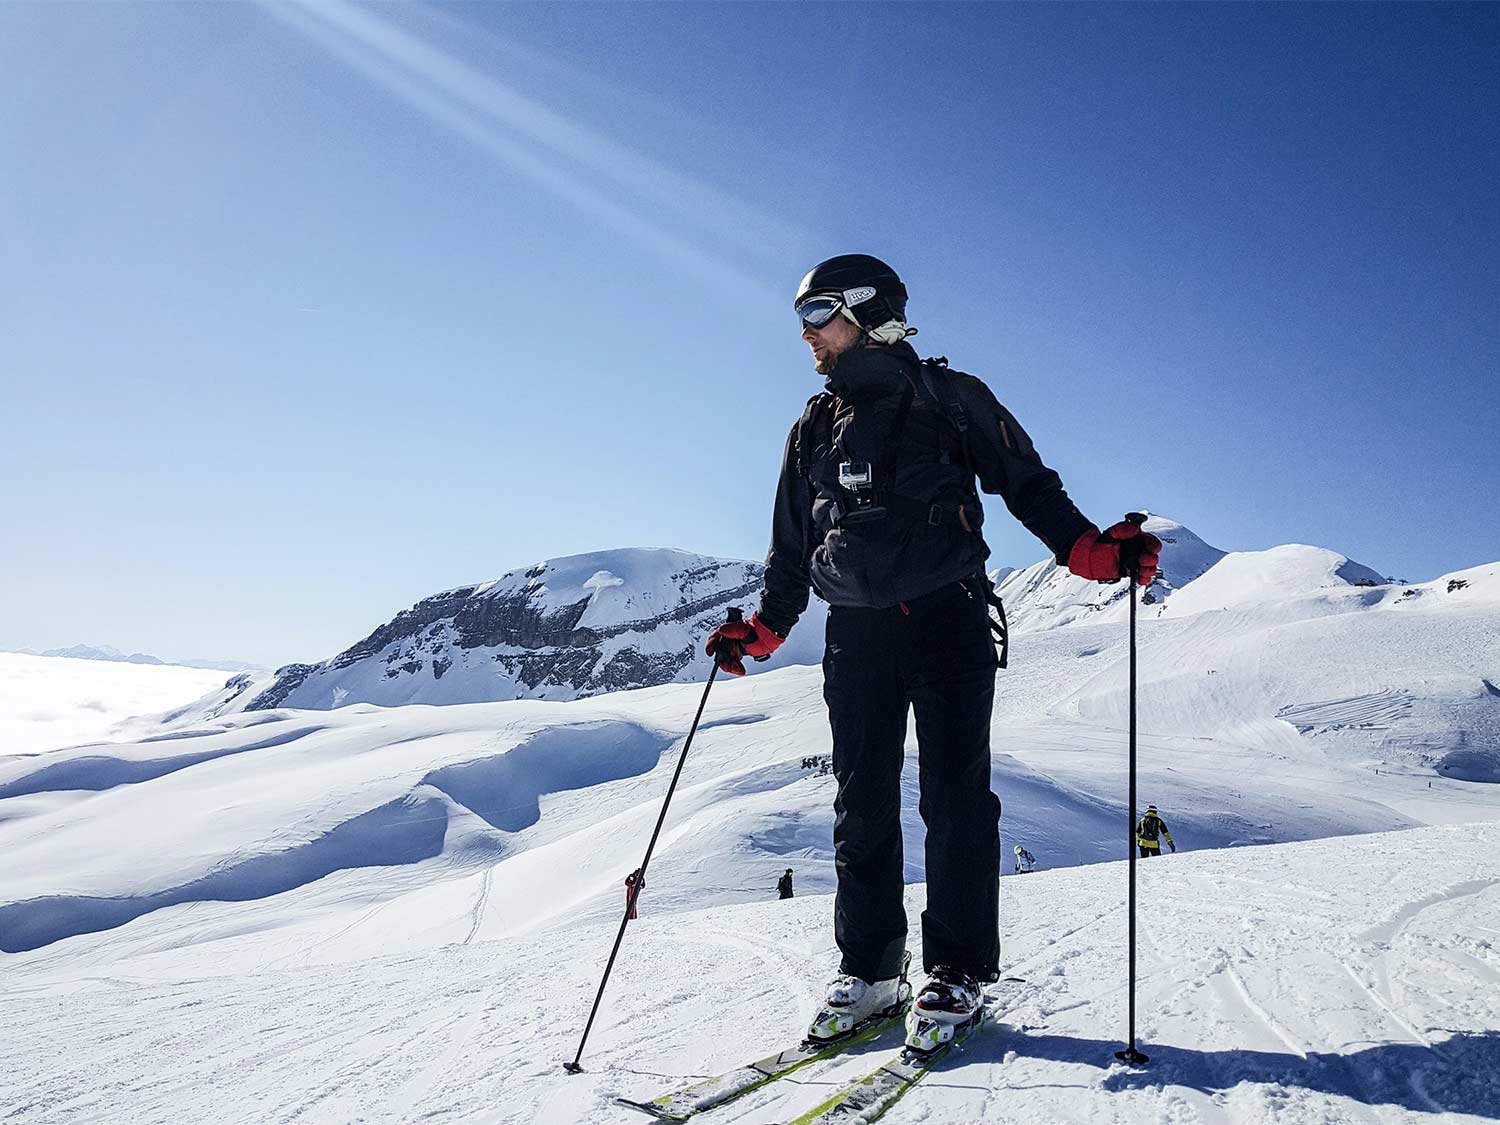 A man wearing skis and the best snow pants on a snowy mountain side.